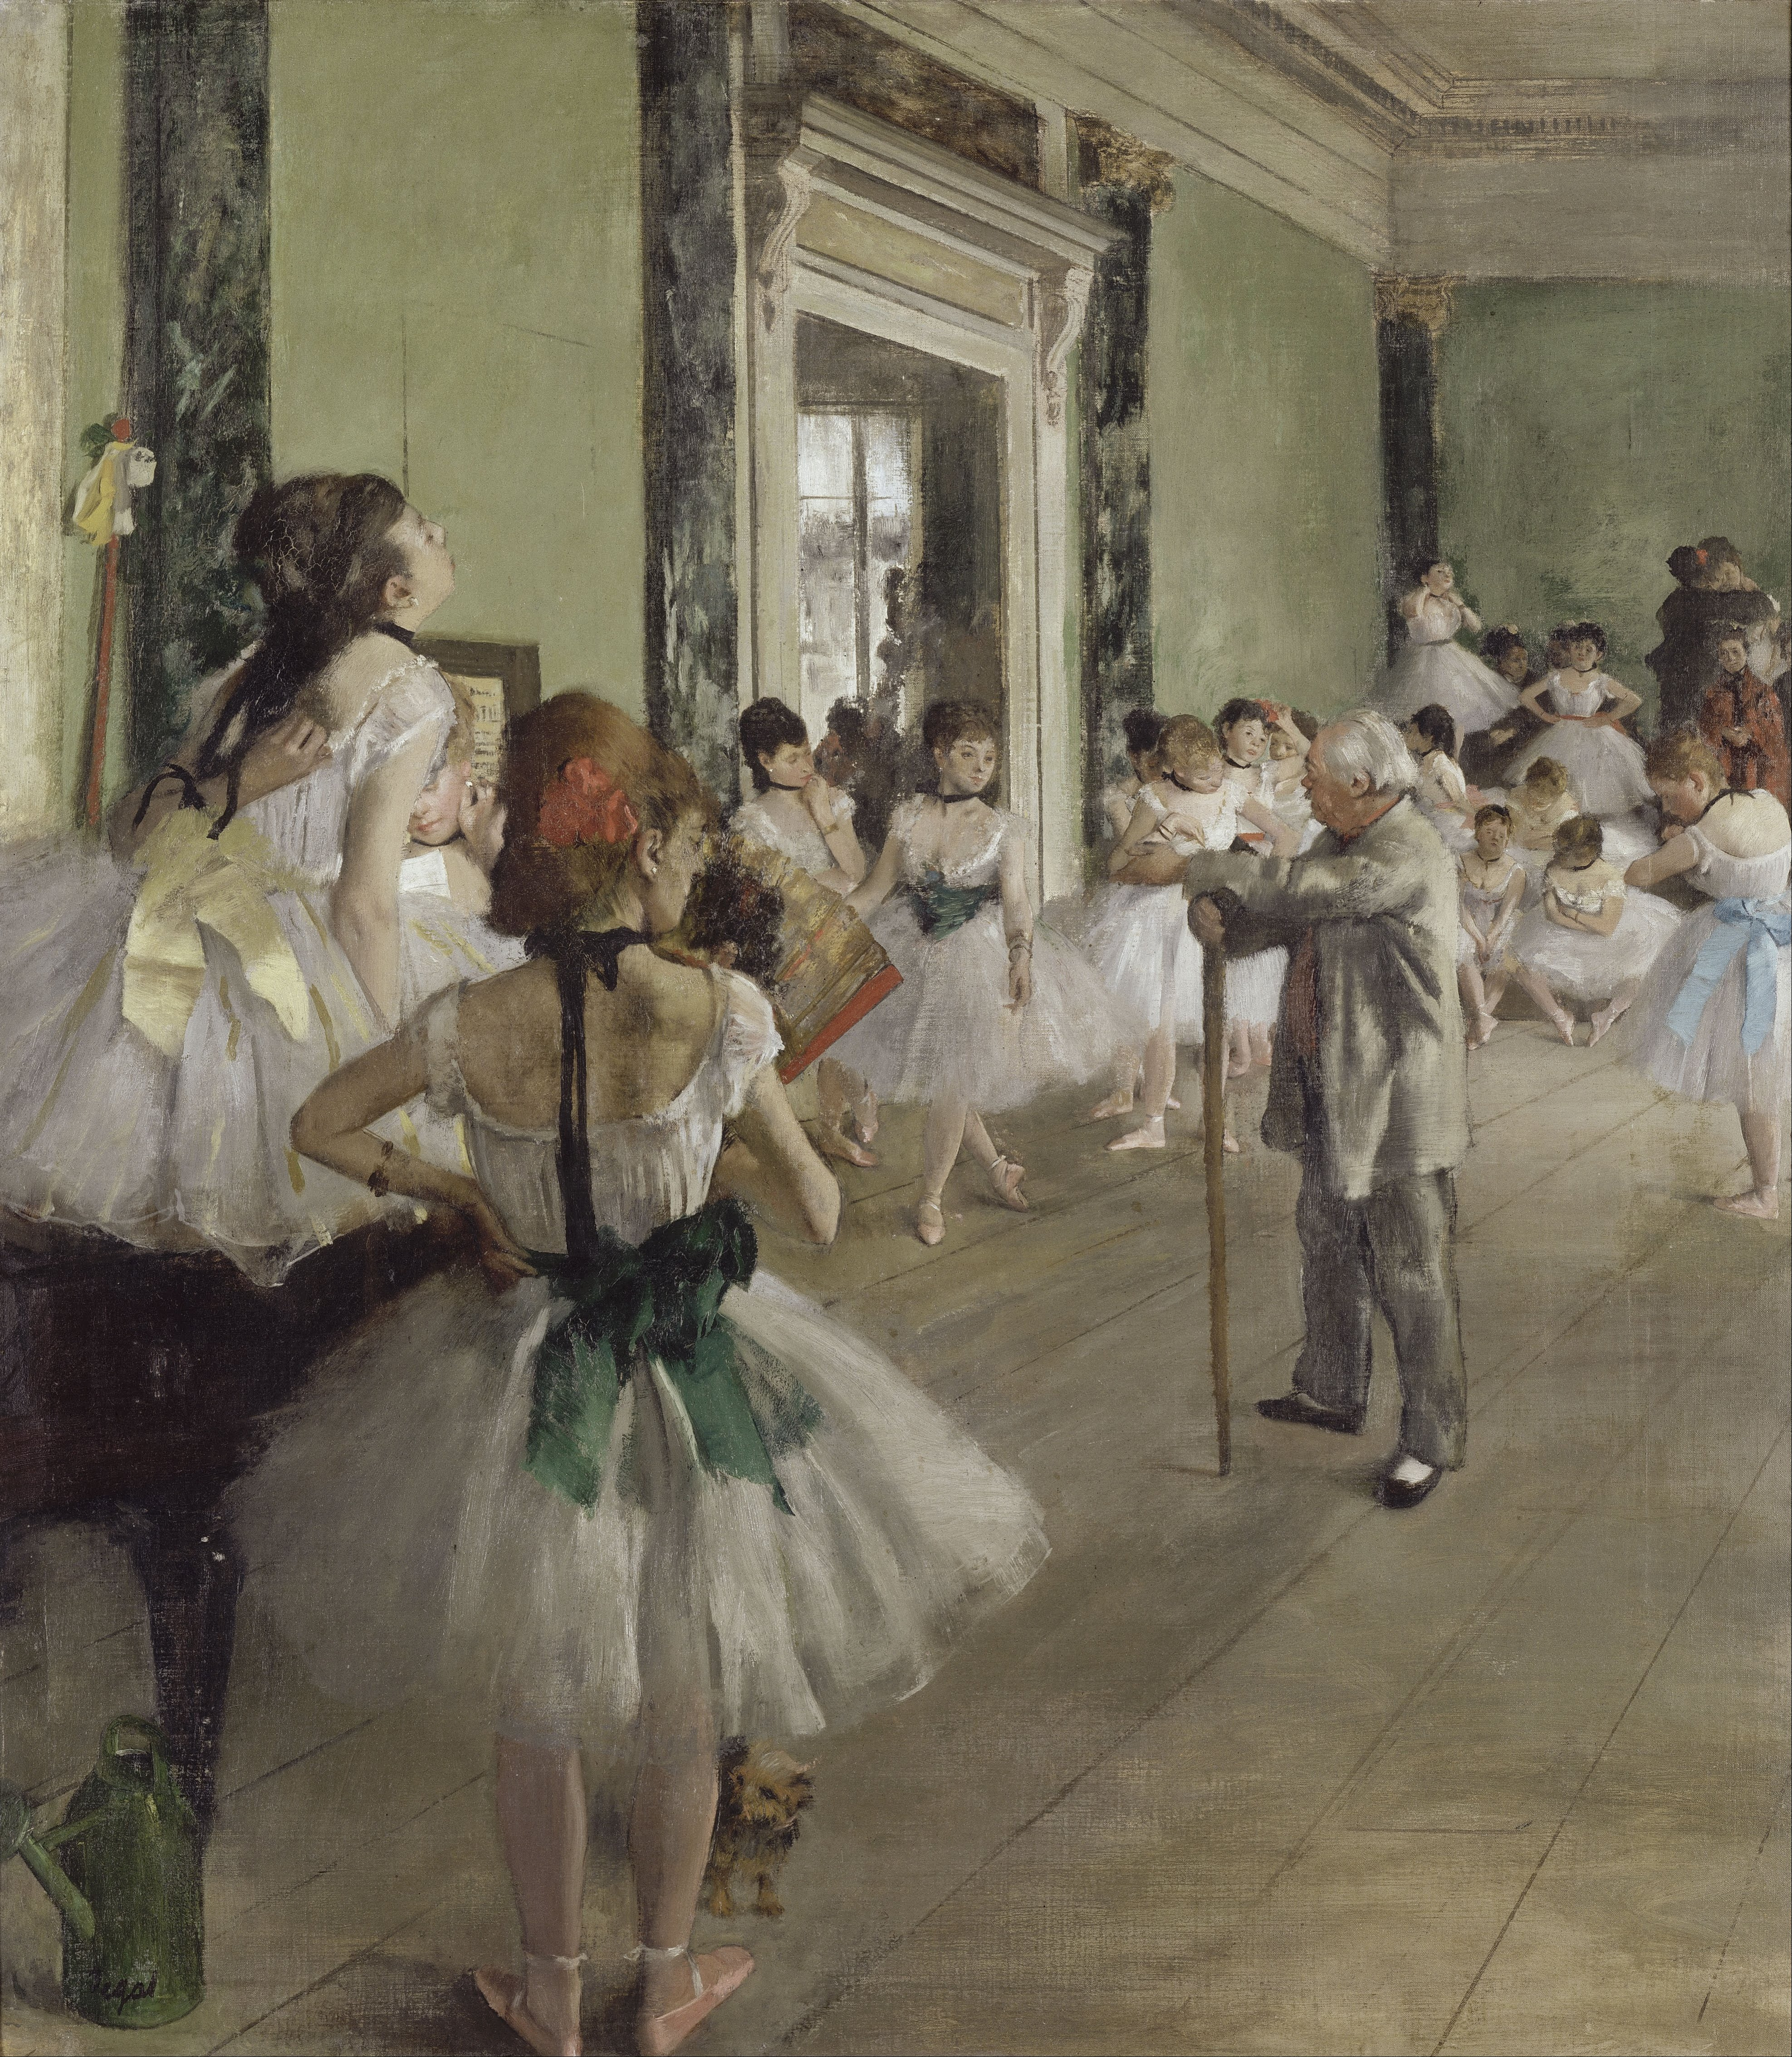 essay dance class edgar degas The dancing class by edgar degas print facts • medium: oil on canvas • date: between 1871 and 1874 • size: 85 x 75 cm • location: the musée d'orsay, paris.